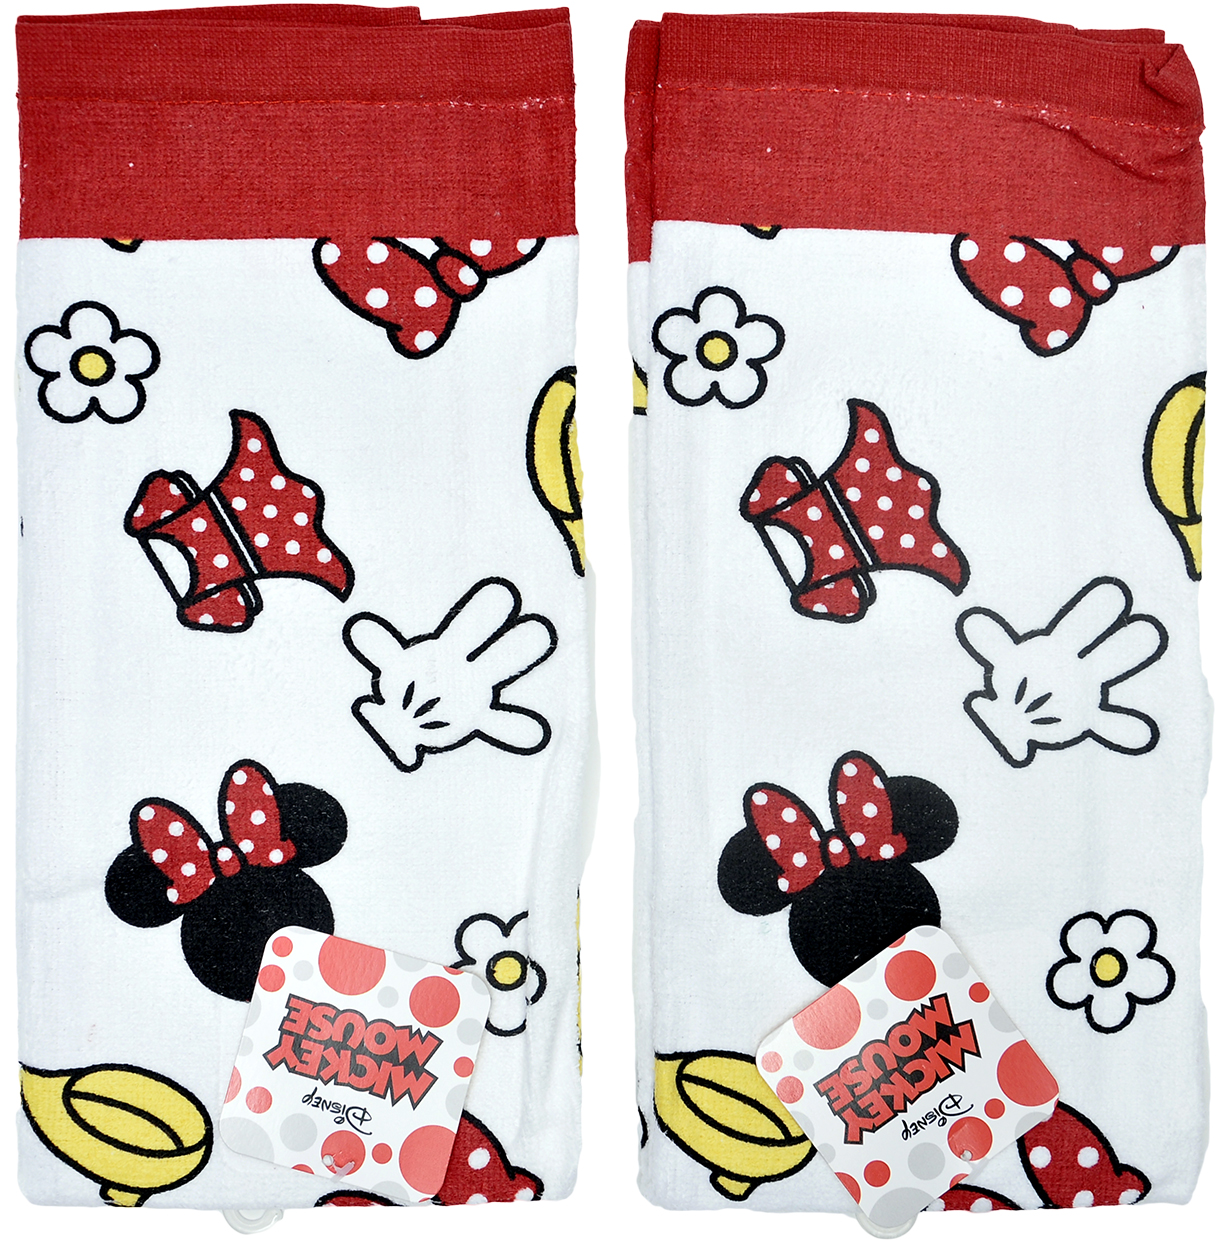 Minnie Mouse Kitchen Dish Towels Set 2-Piece White & Red